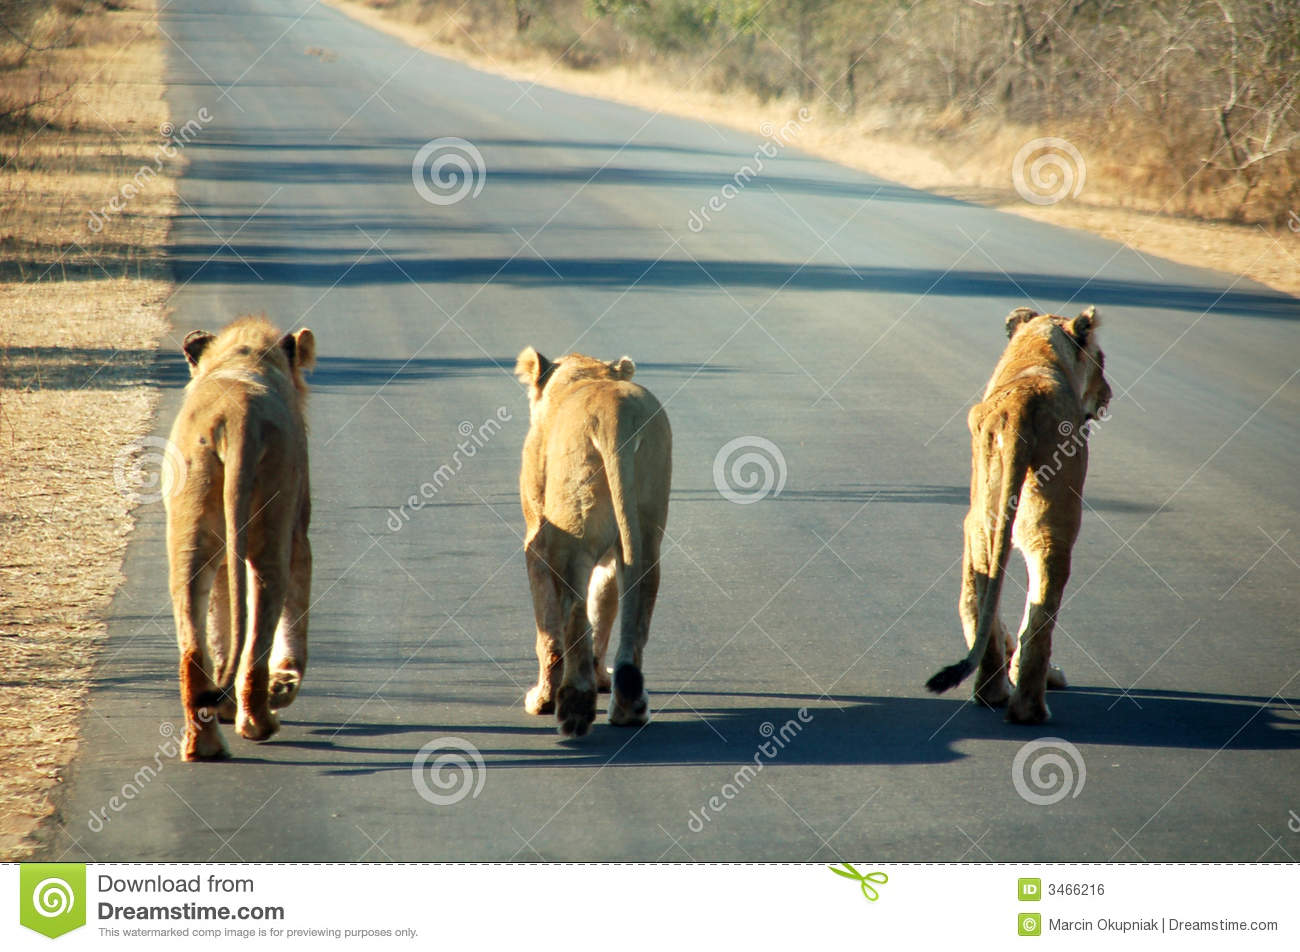 South African Lions on road